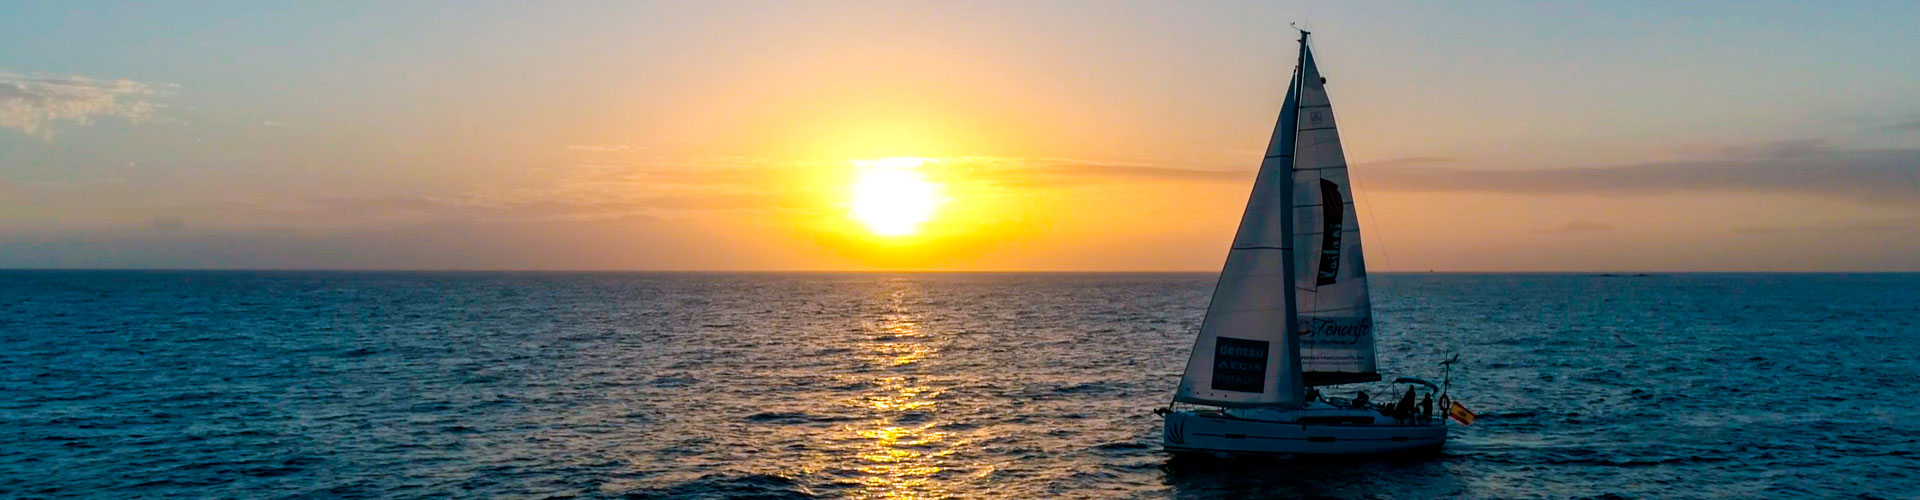 Best Private Boats in Tenerife